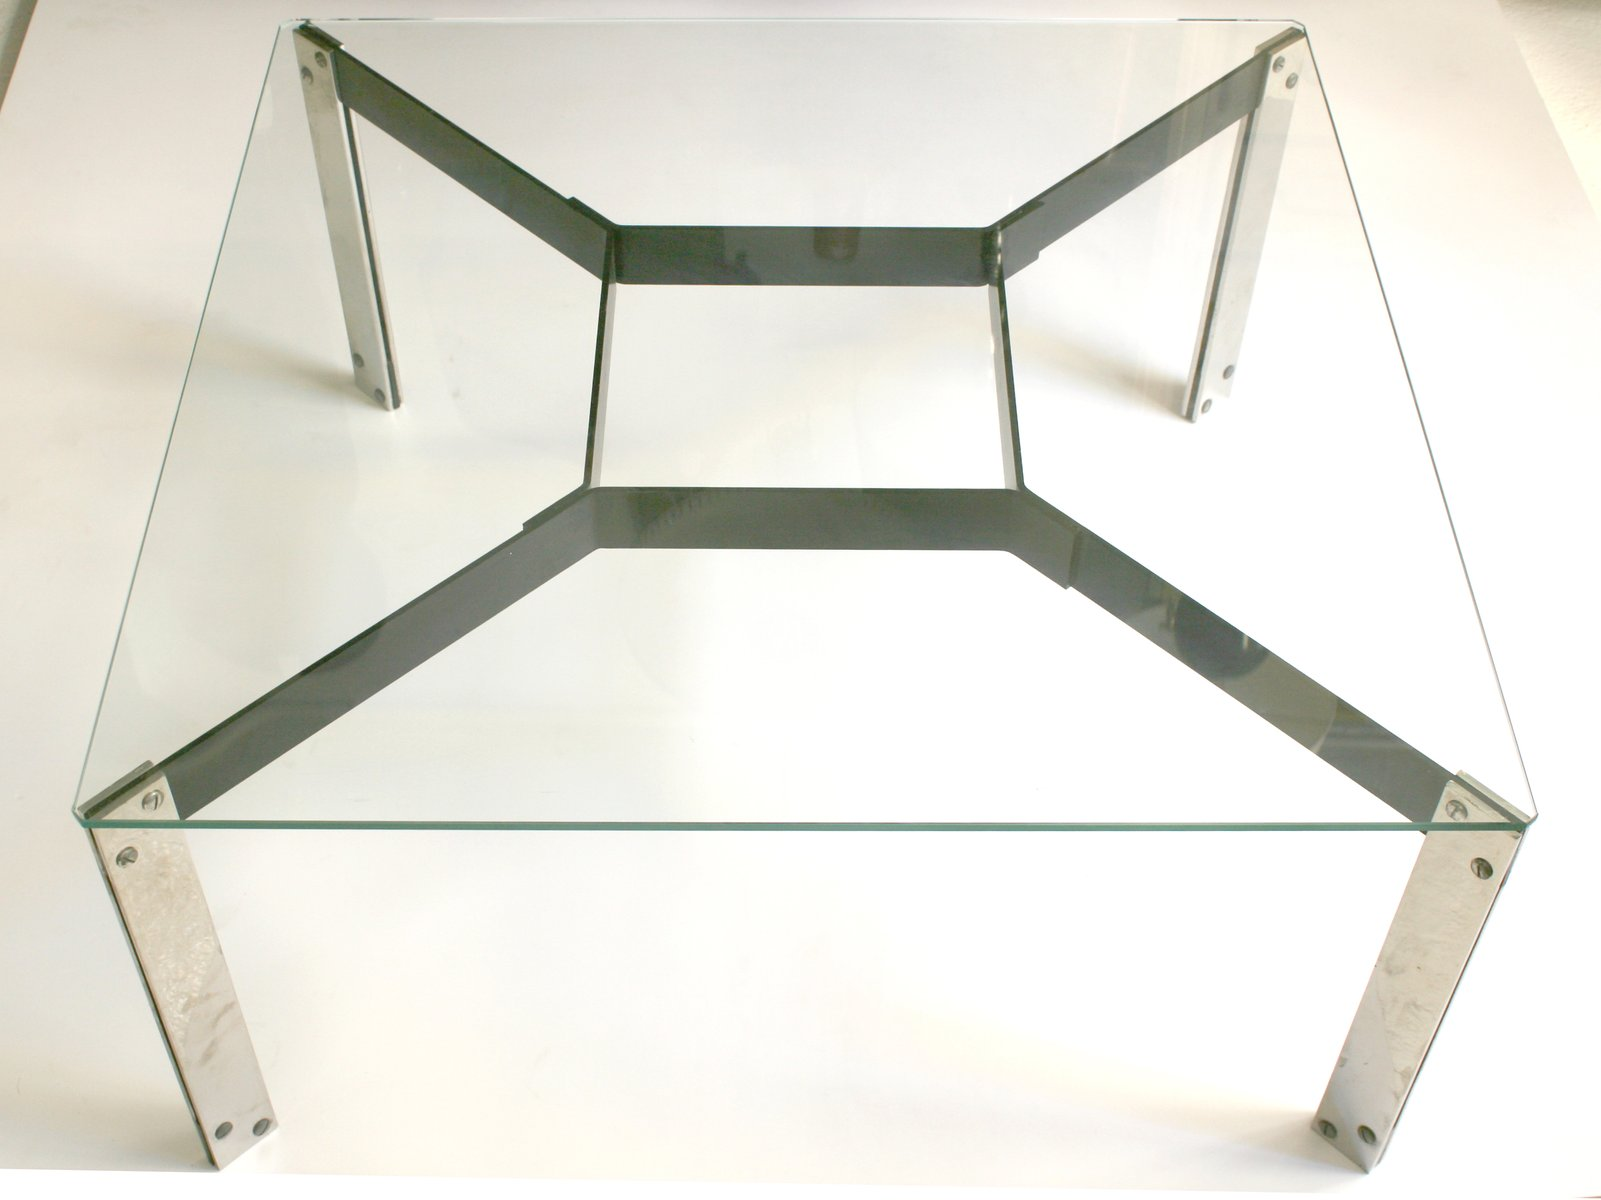 Mid Century Glass Table by Miquel Mila for Gres 1962 for sale at